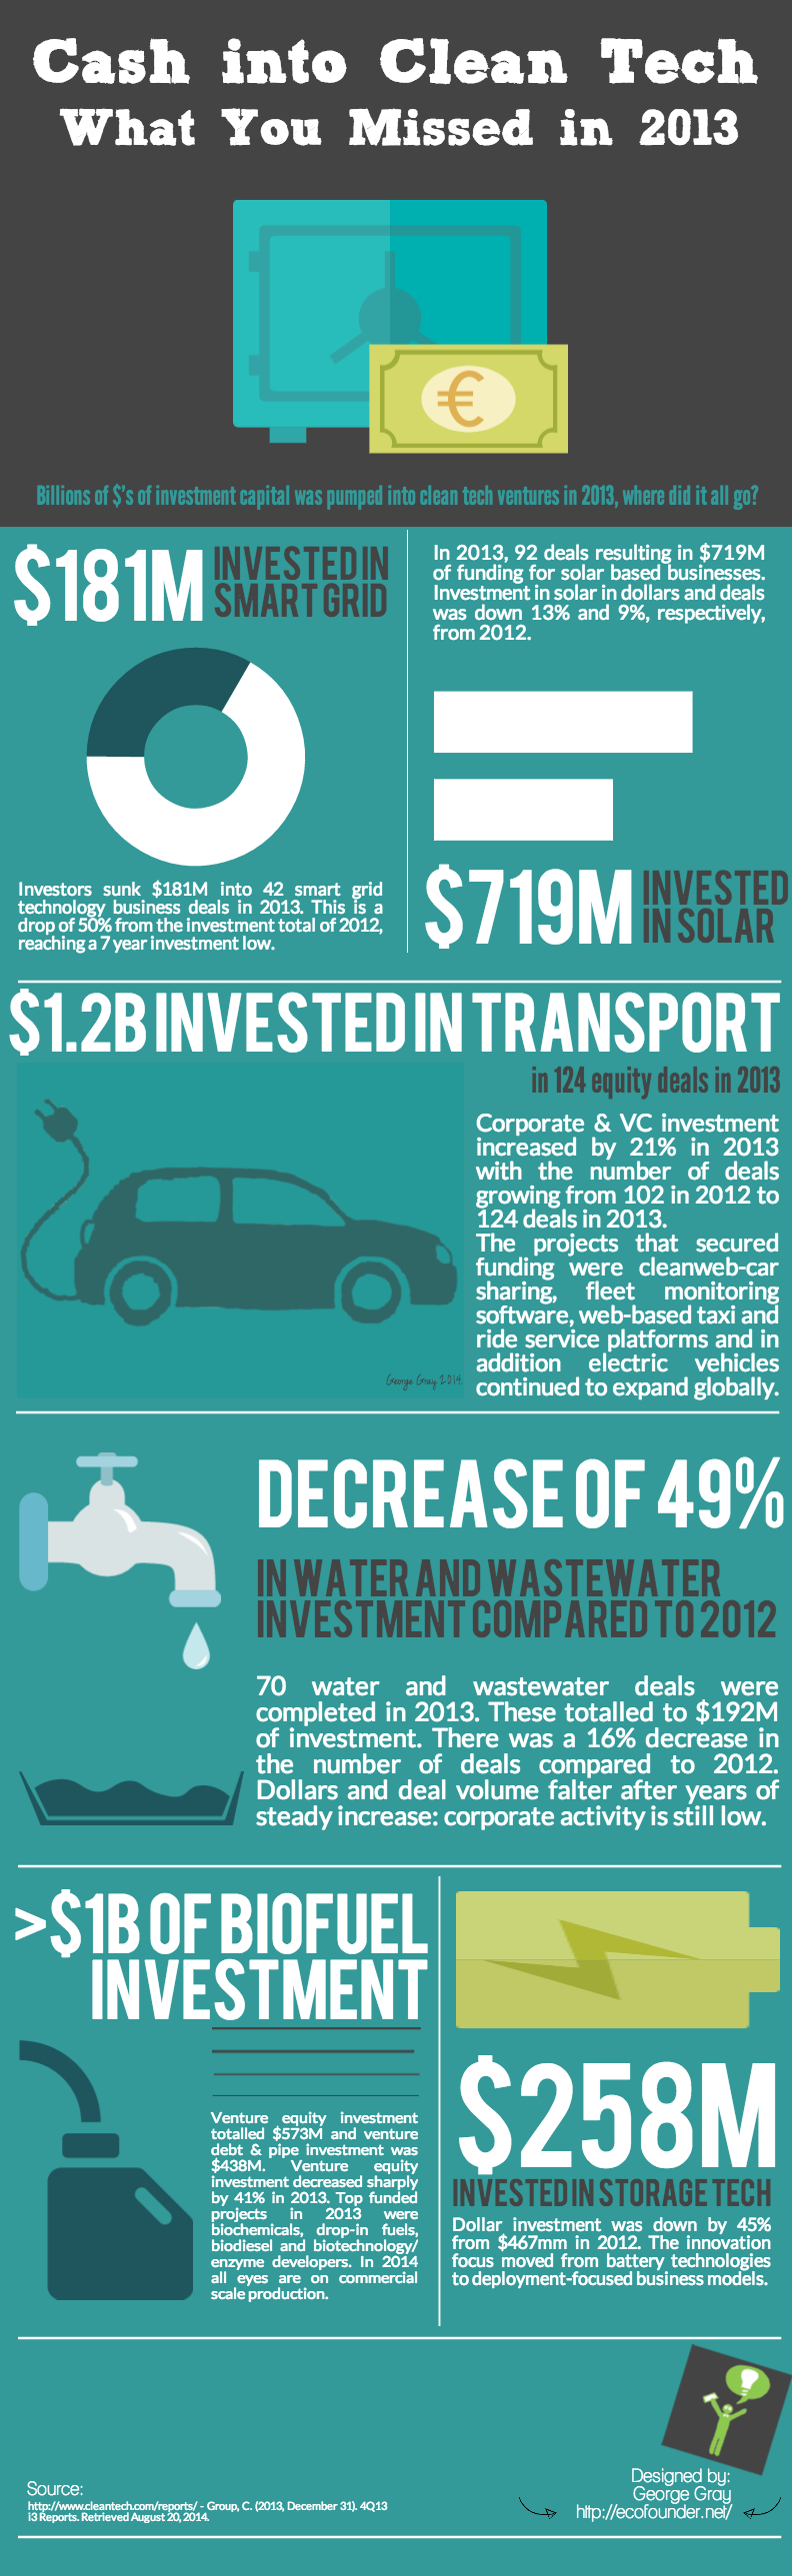 Clean tech investment